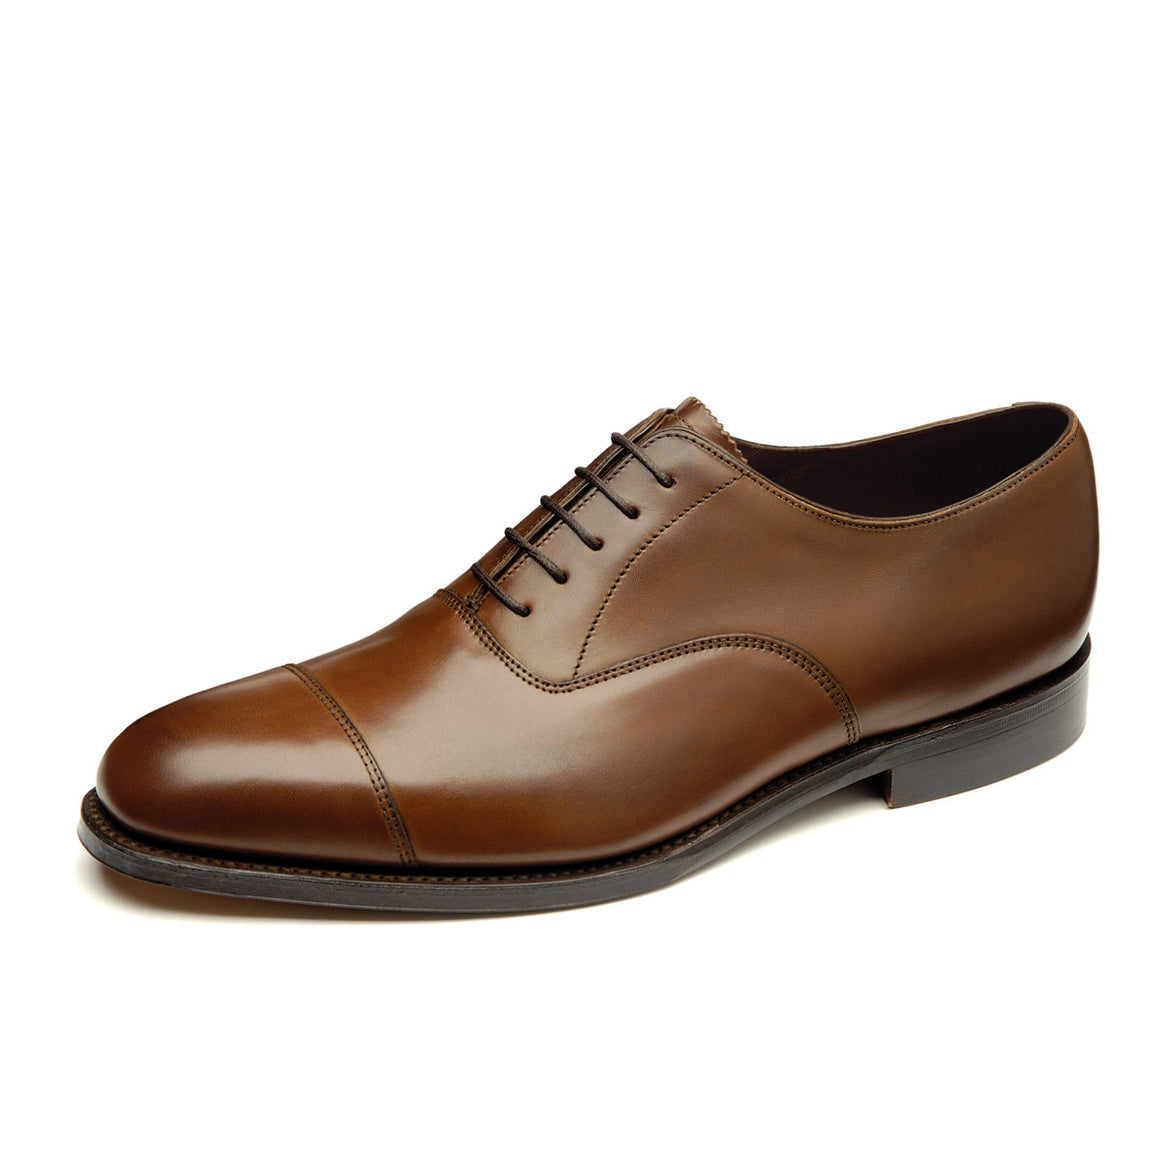 Loake - Aldwych (Brown) - Brund